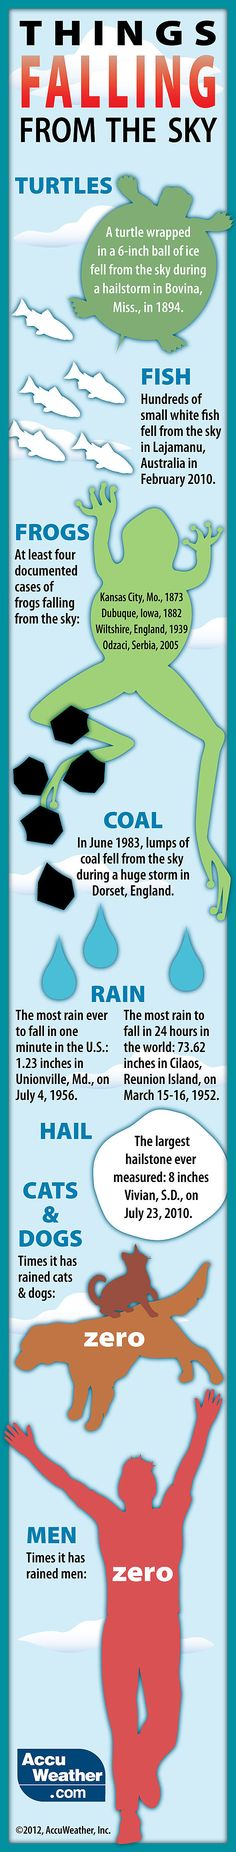 Interesting weather facts.